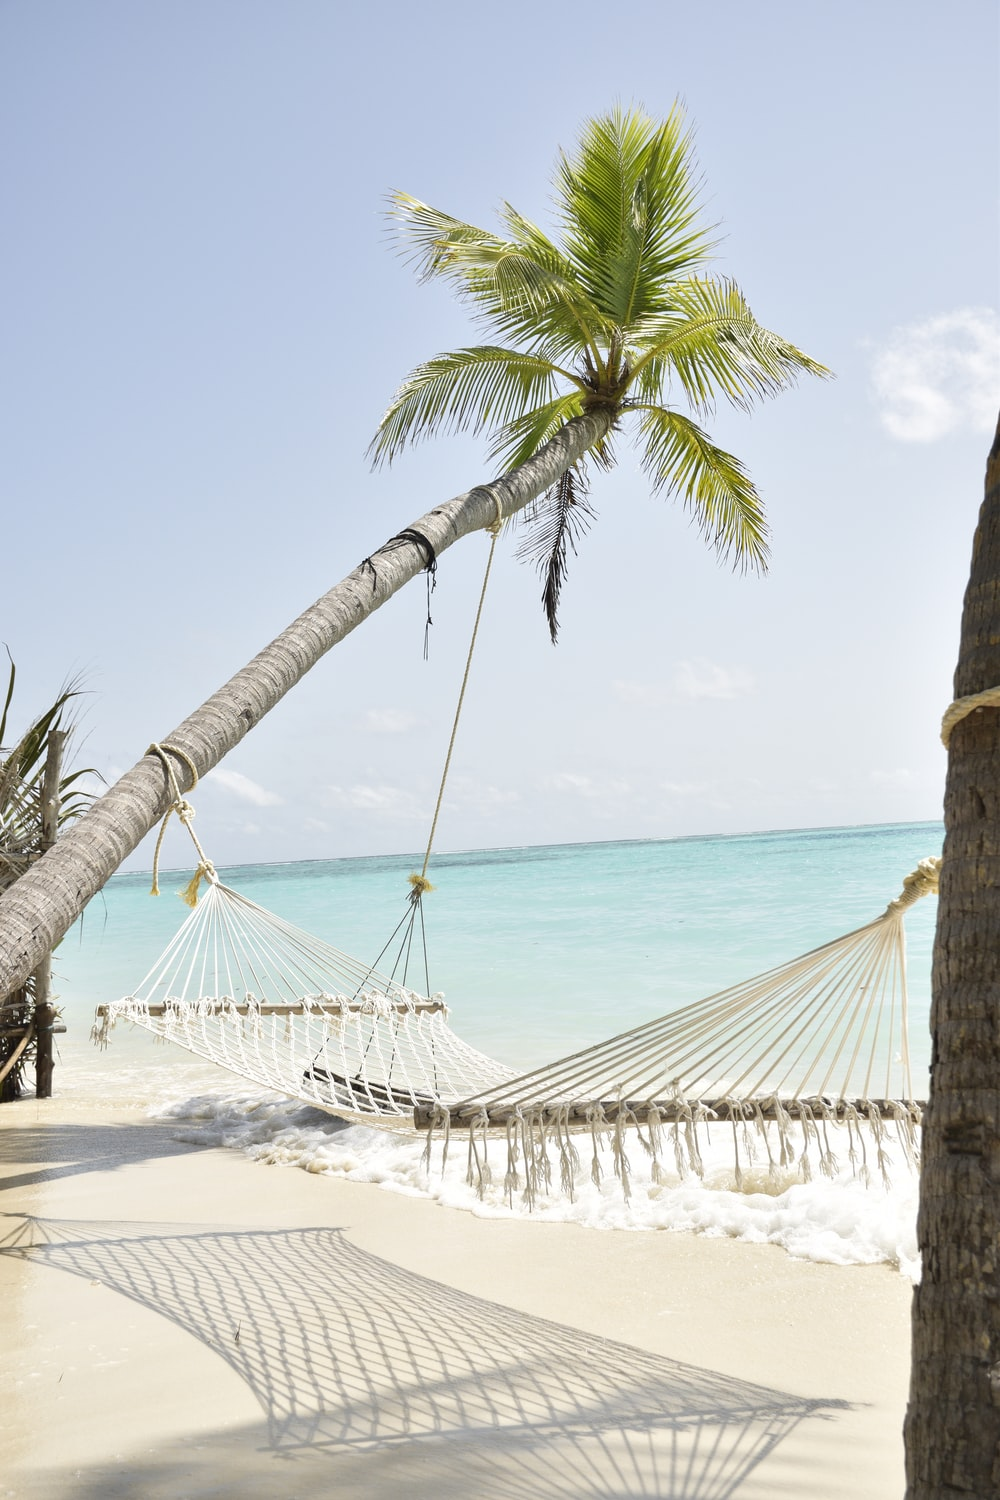 coconut palm tree and hammock by the sea during daytime